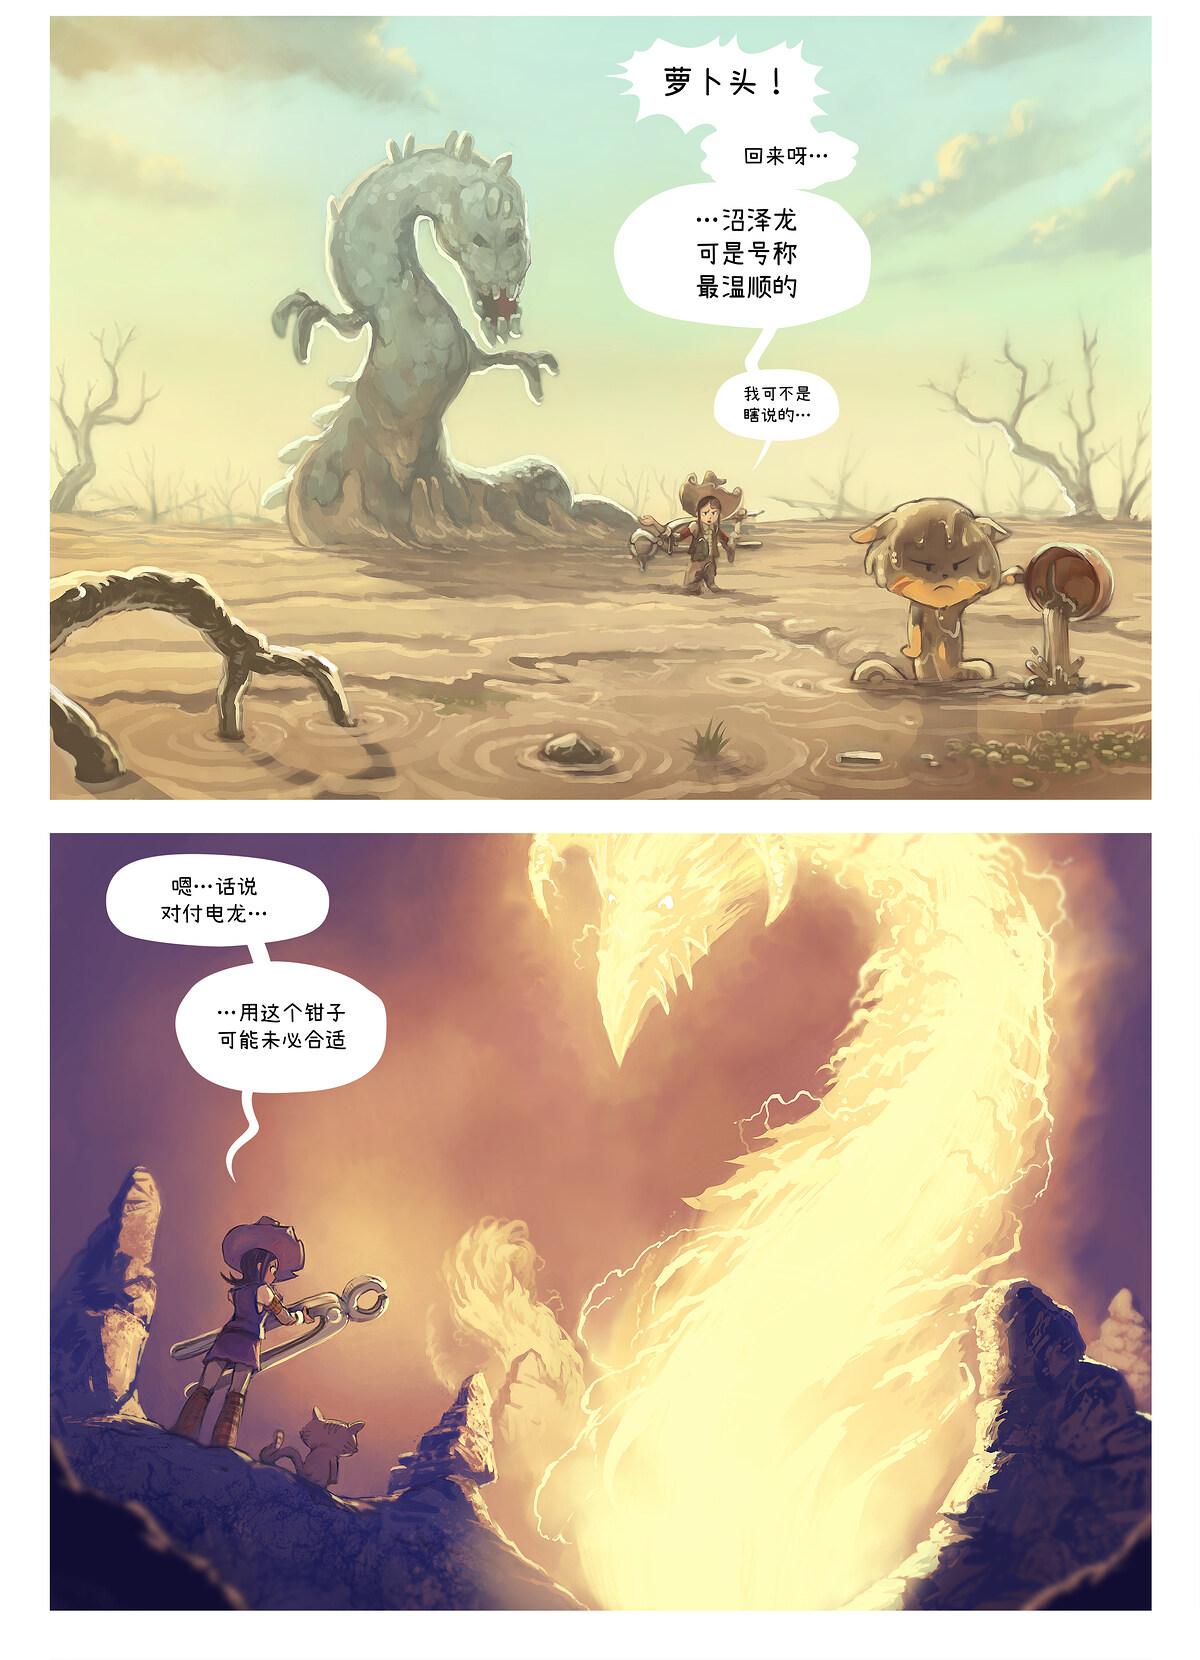 A webcomic page of Pepper&Carrot, 漫画全集 14 [cn], 页面 4